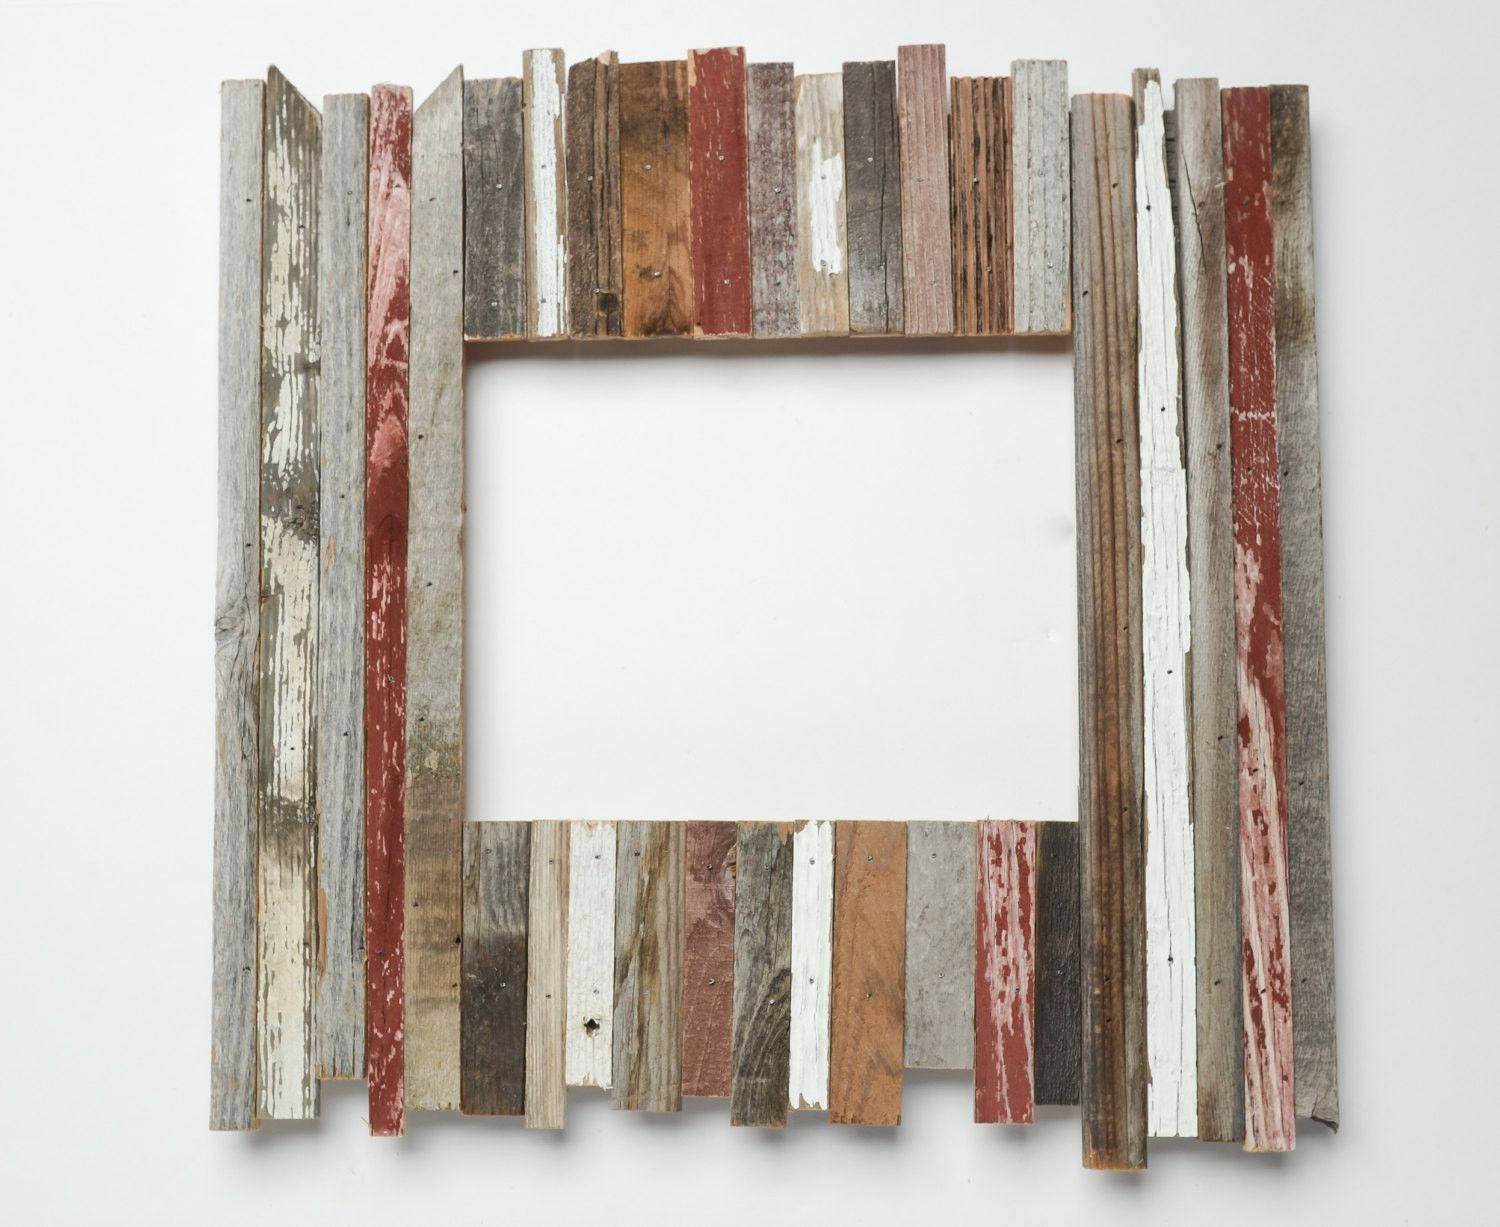 16x20 Reclaimed Rustic Picture Frame Picture Frames Pinterest